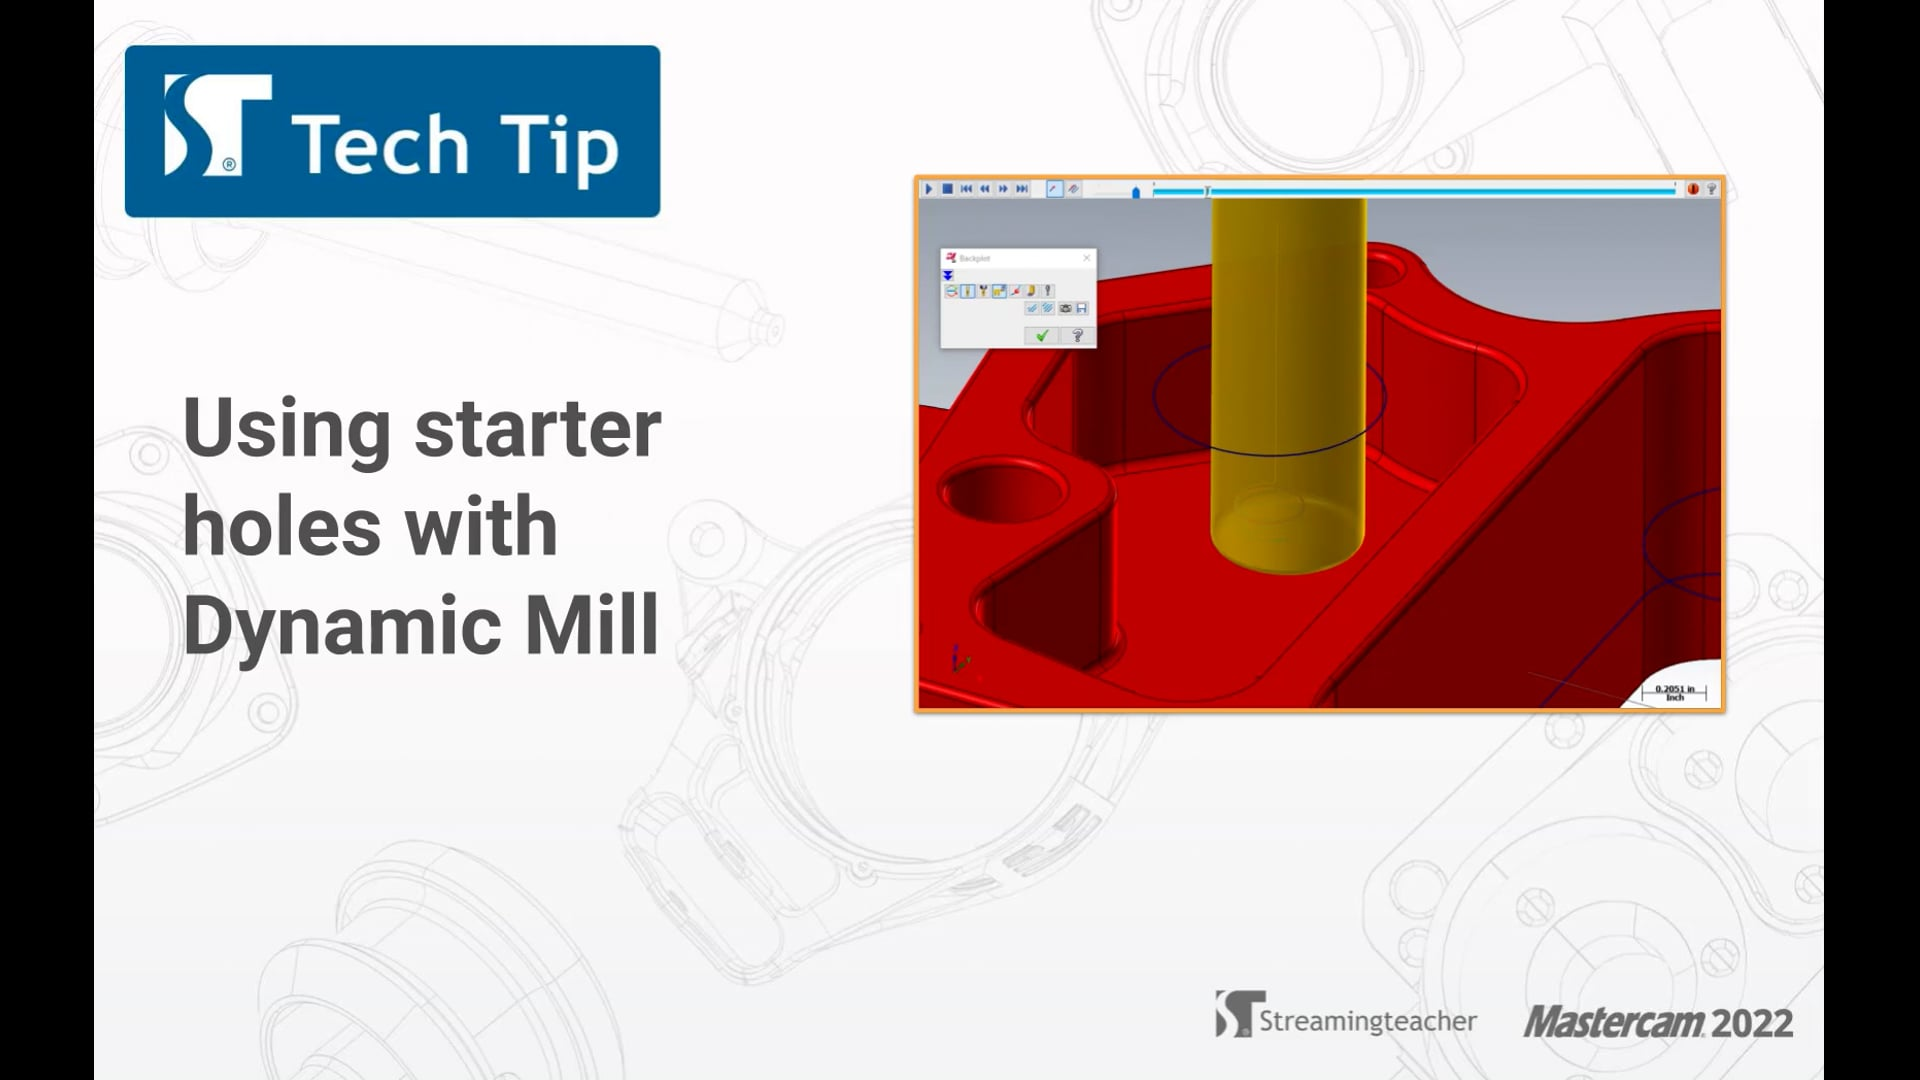 Using starter holes with Dynamic Mill